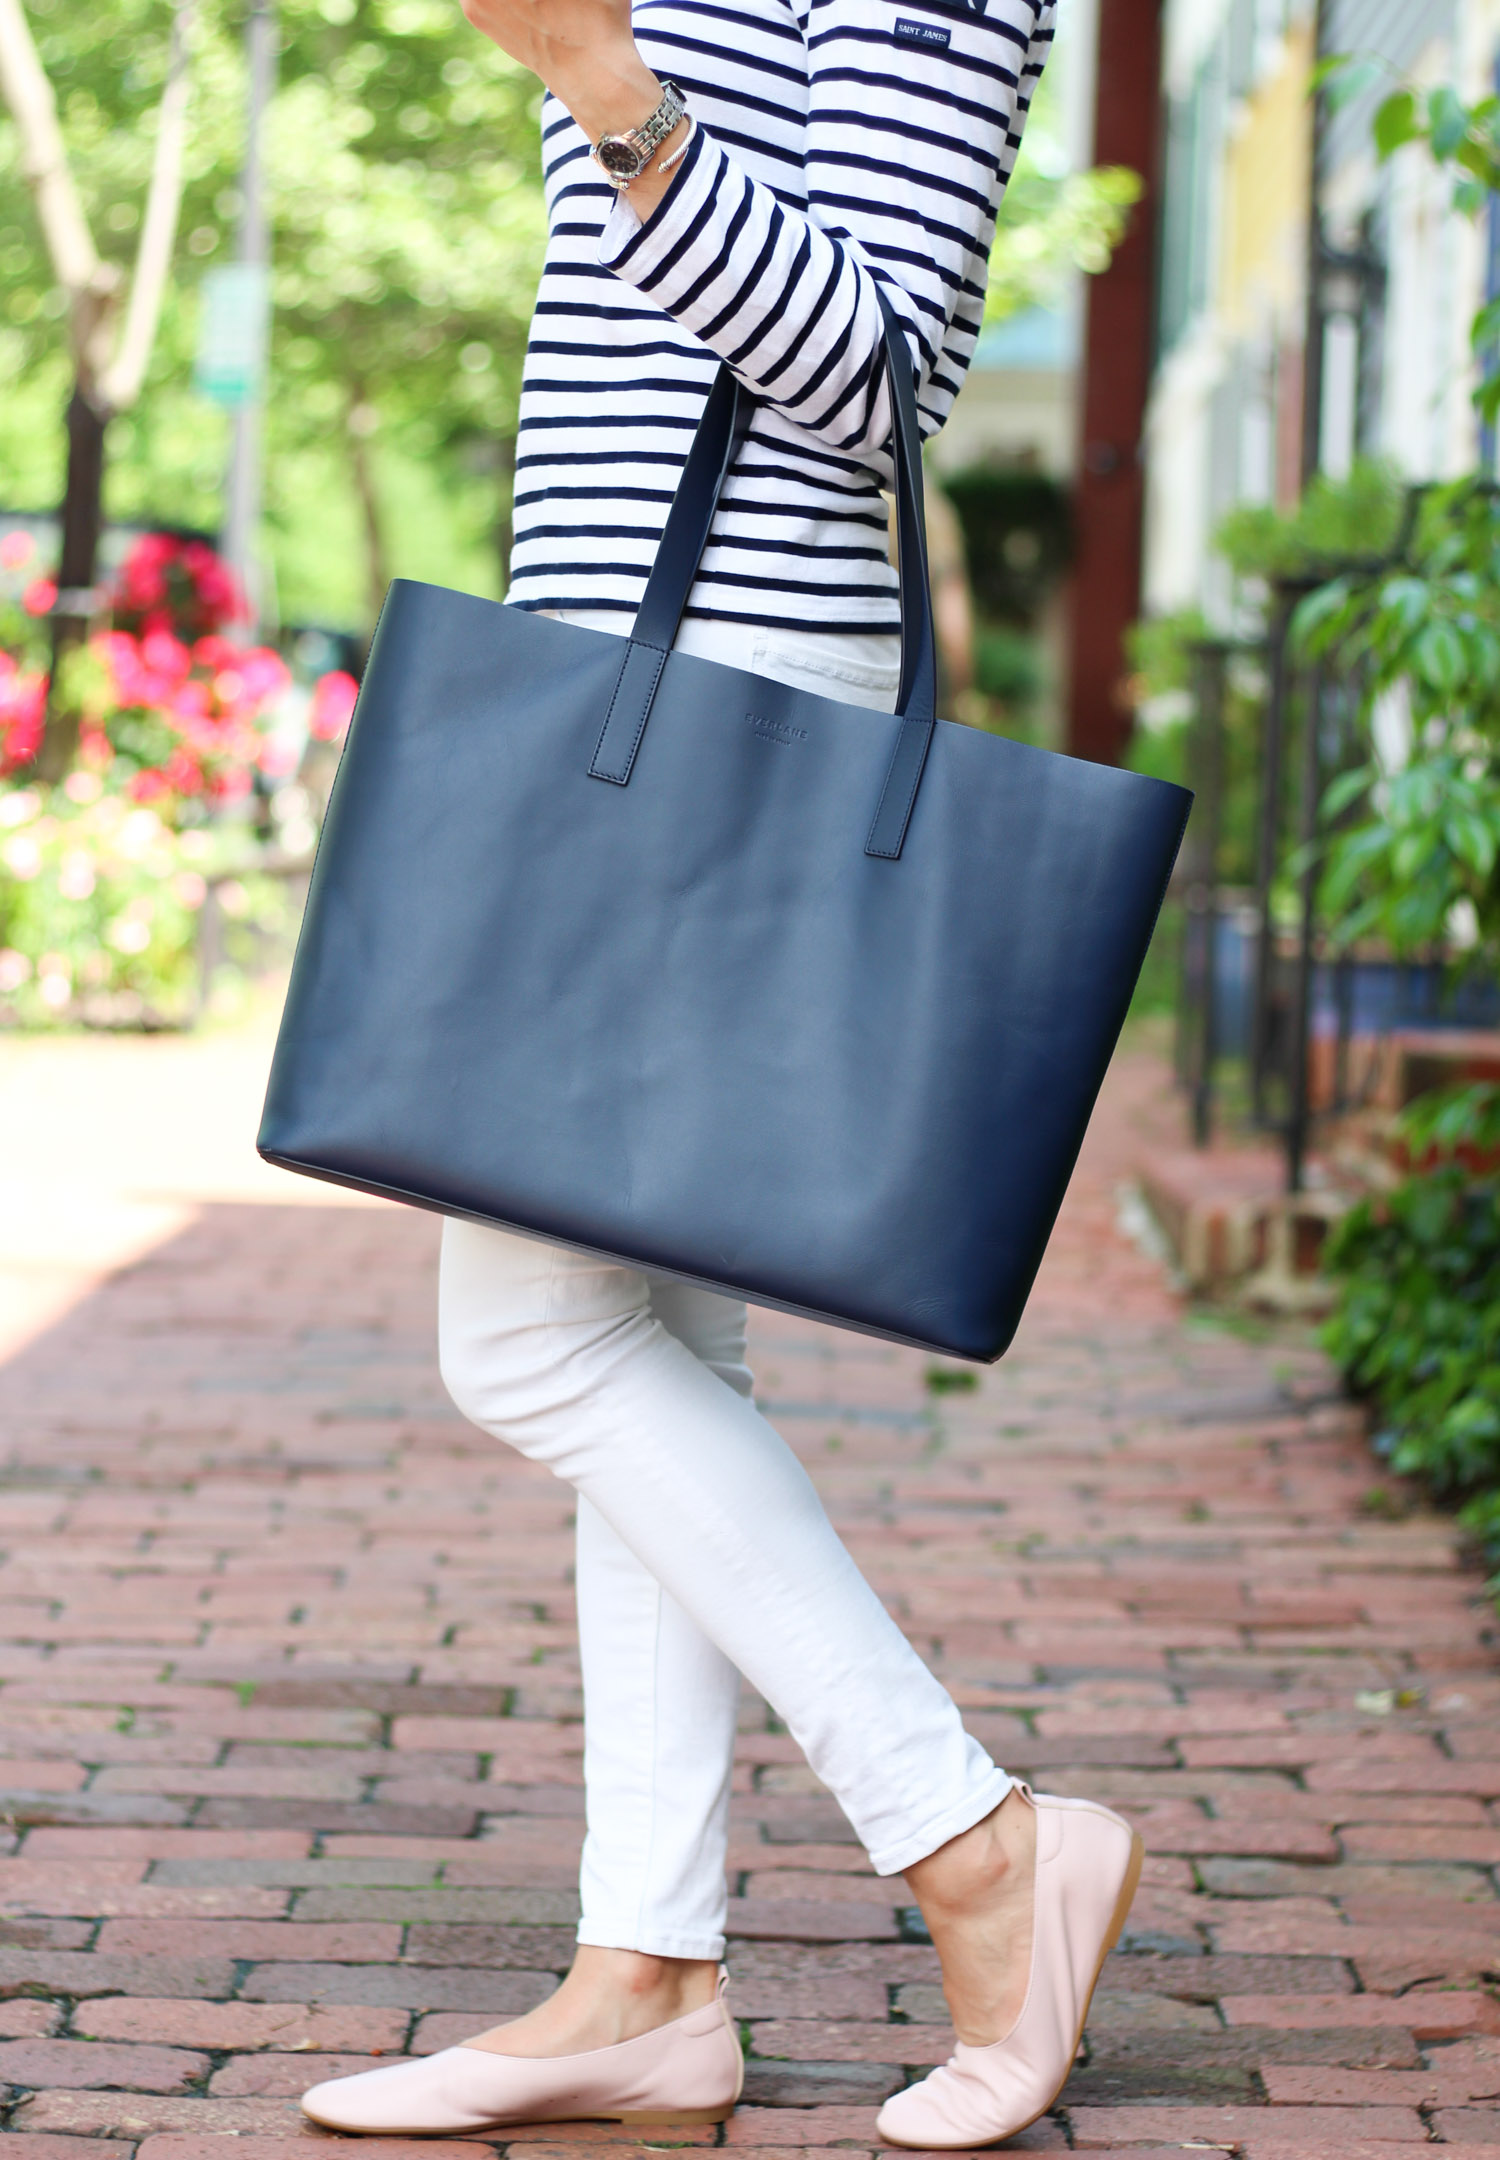 Everlane Day Tote - Royal Wedding Thoughts + Comfy Leather Flats featured by DC Style Blogger, Monica Dutia